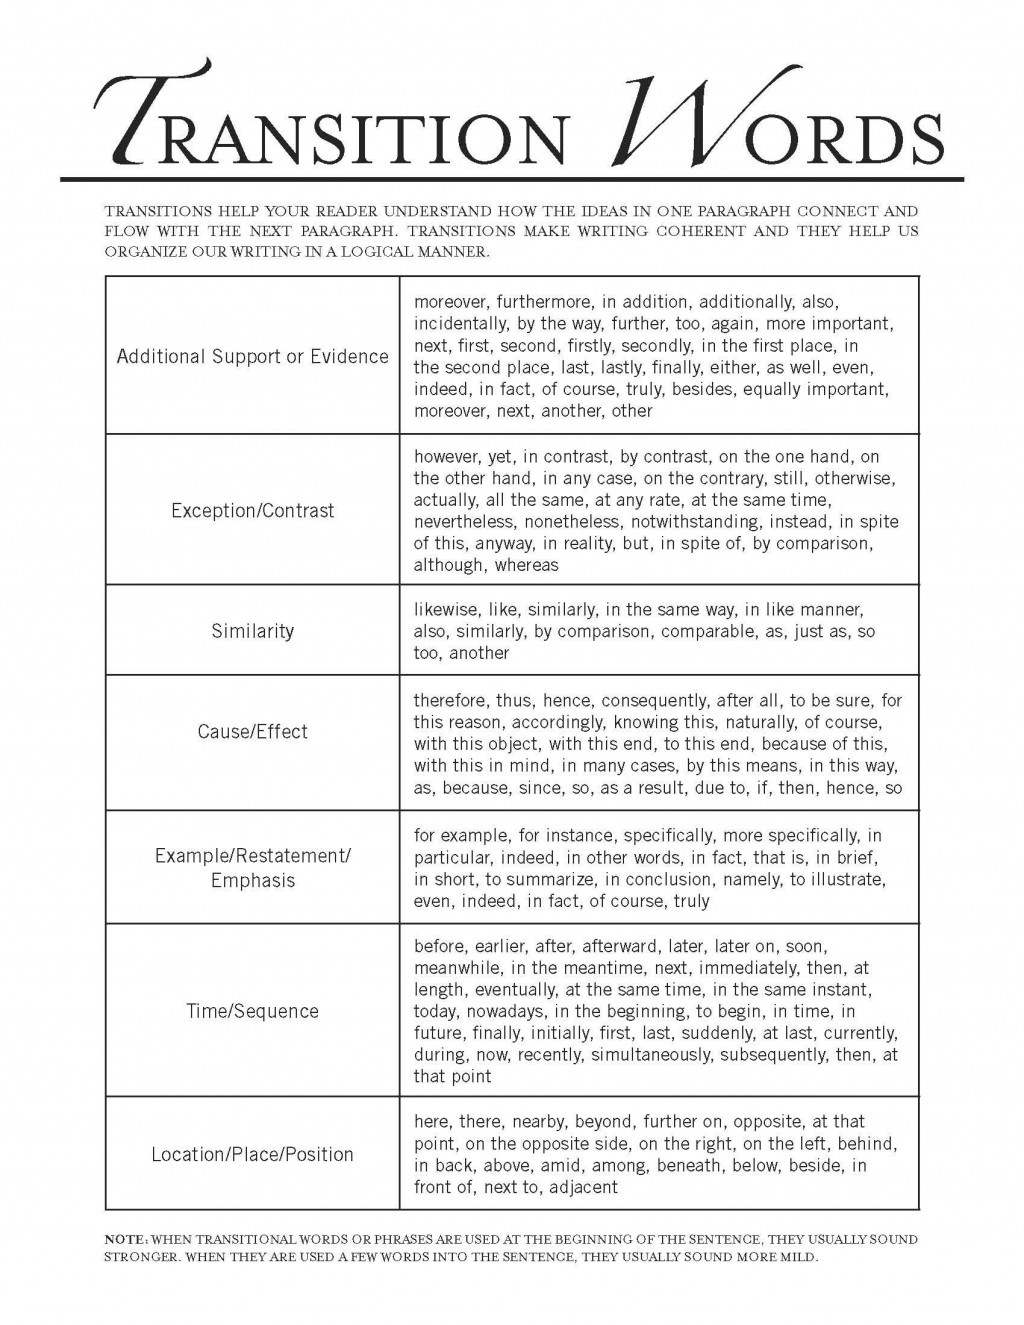 002 Essay Example Transition Words For Essays Rare And Phrases List Pdf 4th Grade Of Writing Large